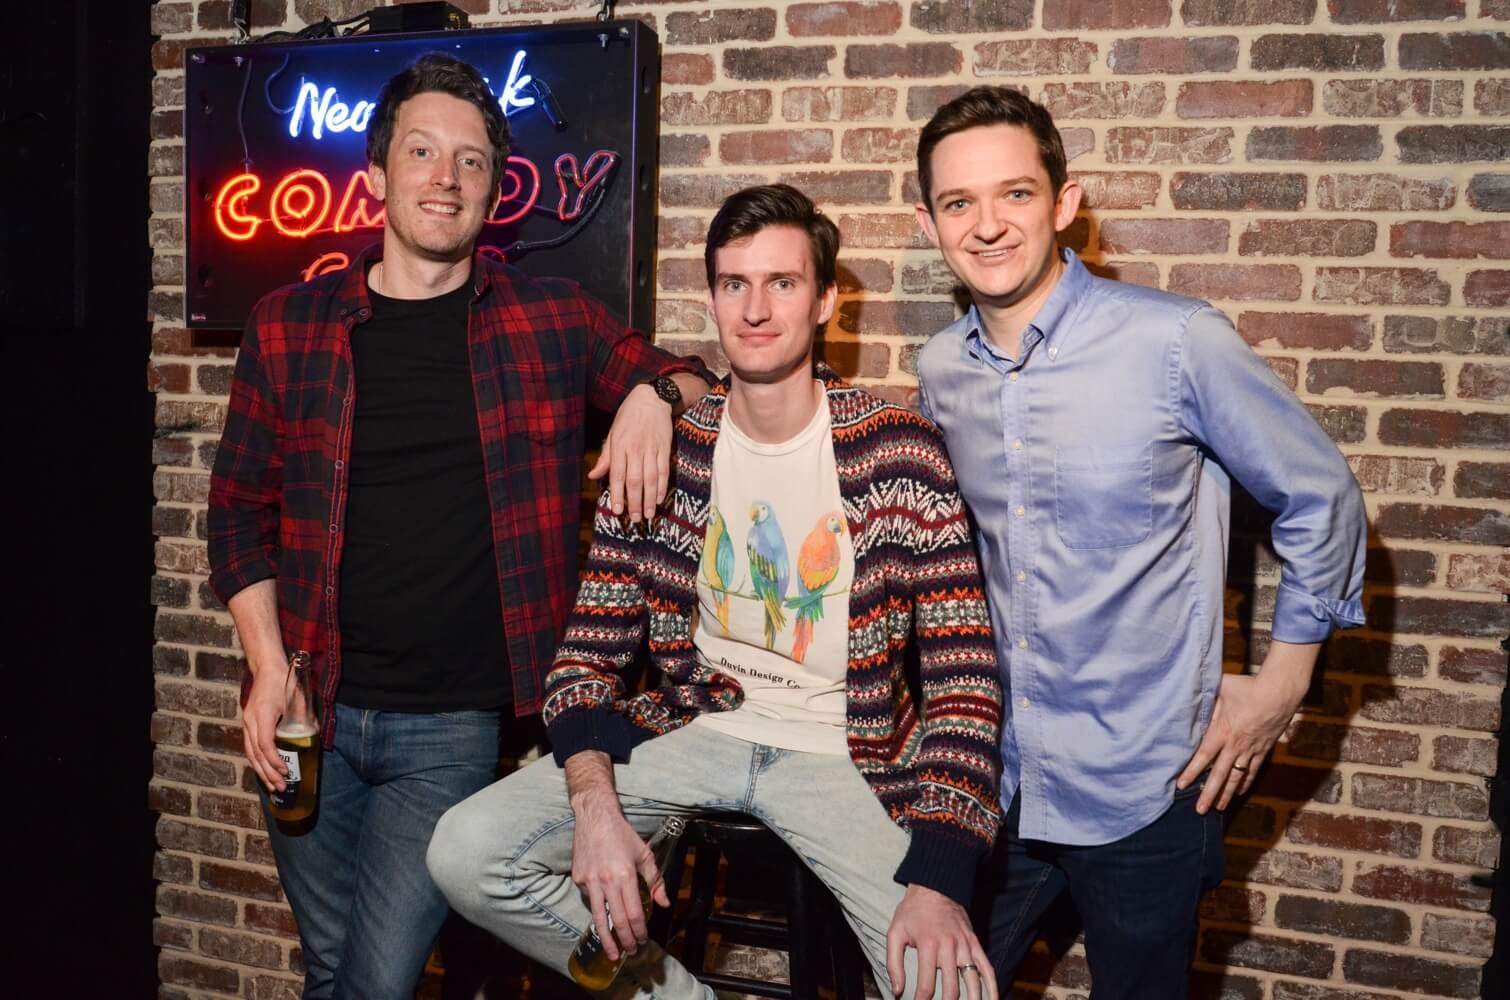 Comedy Road Trip, a monthly show at New York Comedy Club